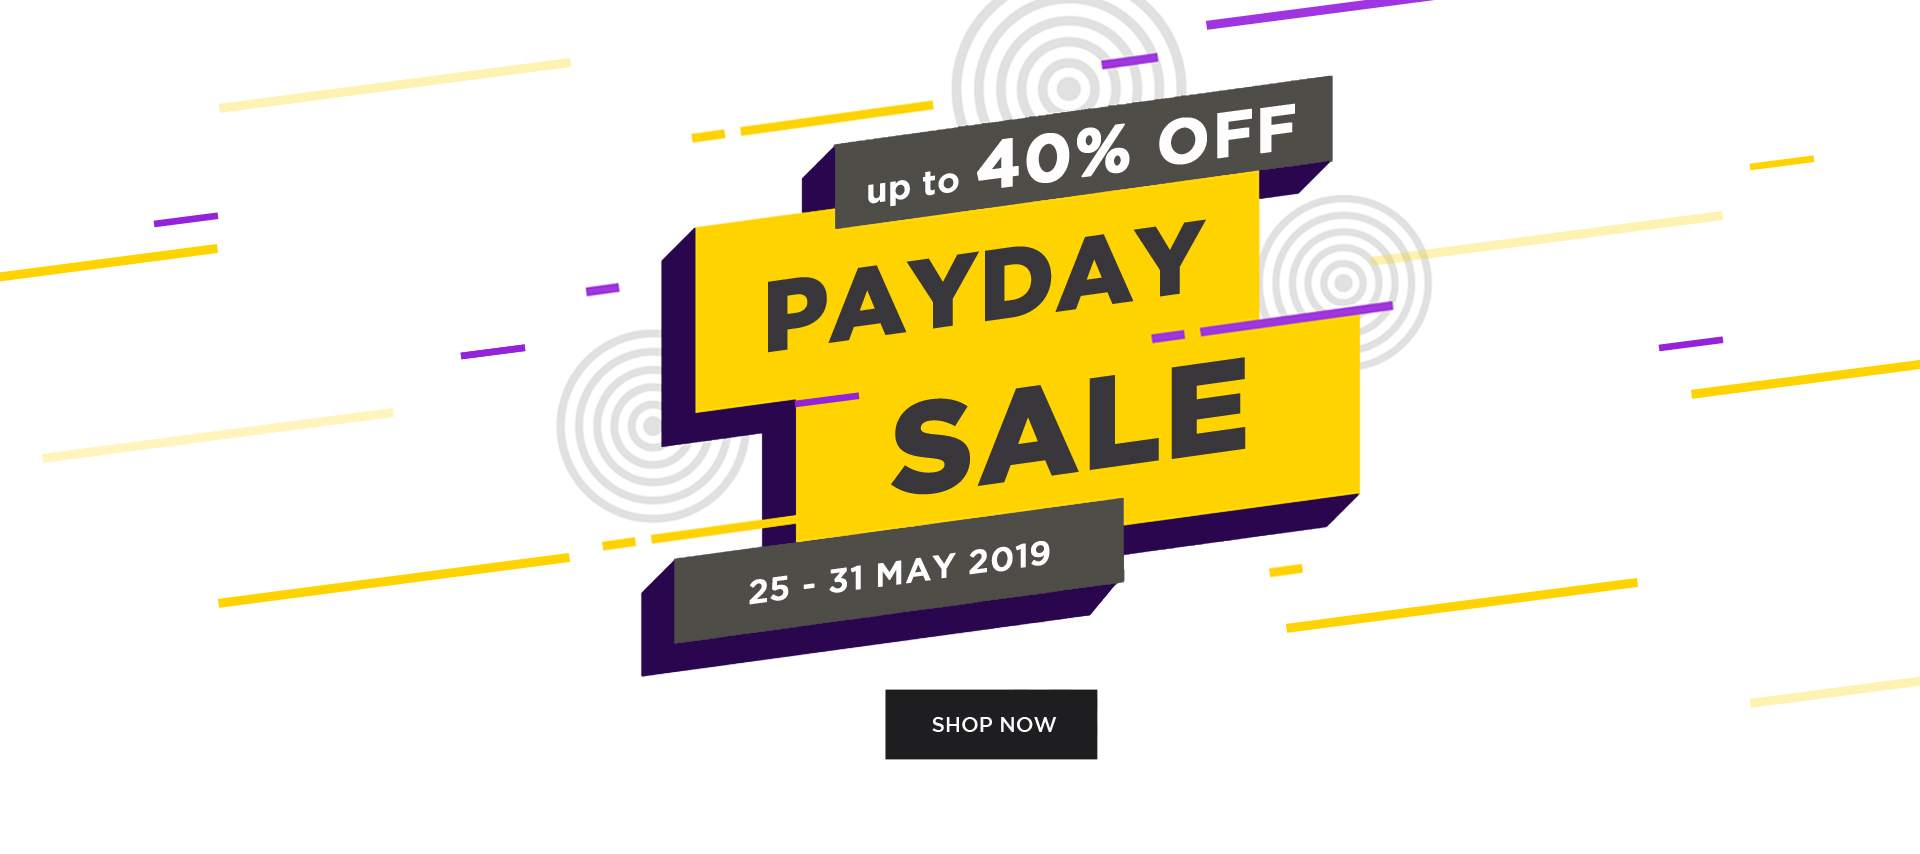 Urban Icon Payday Sale up to 40% off